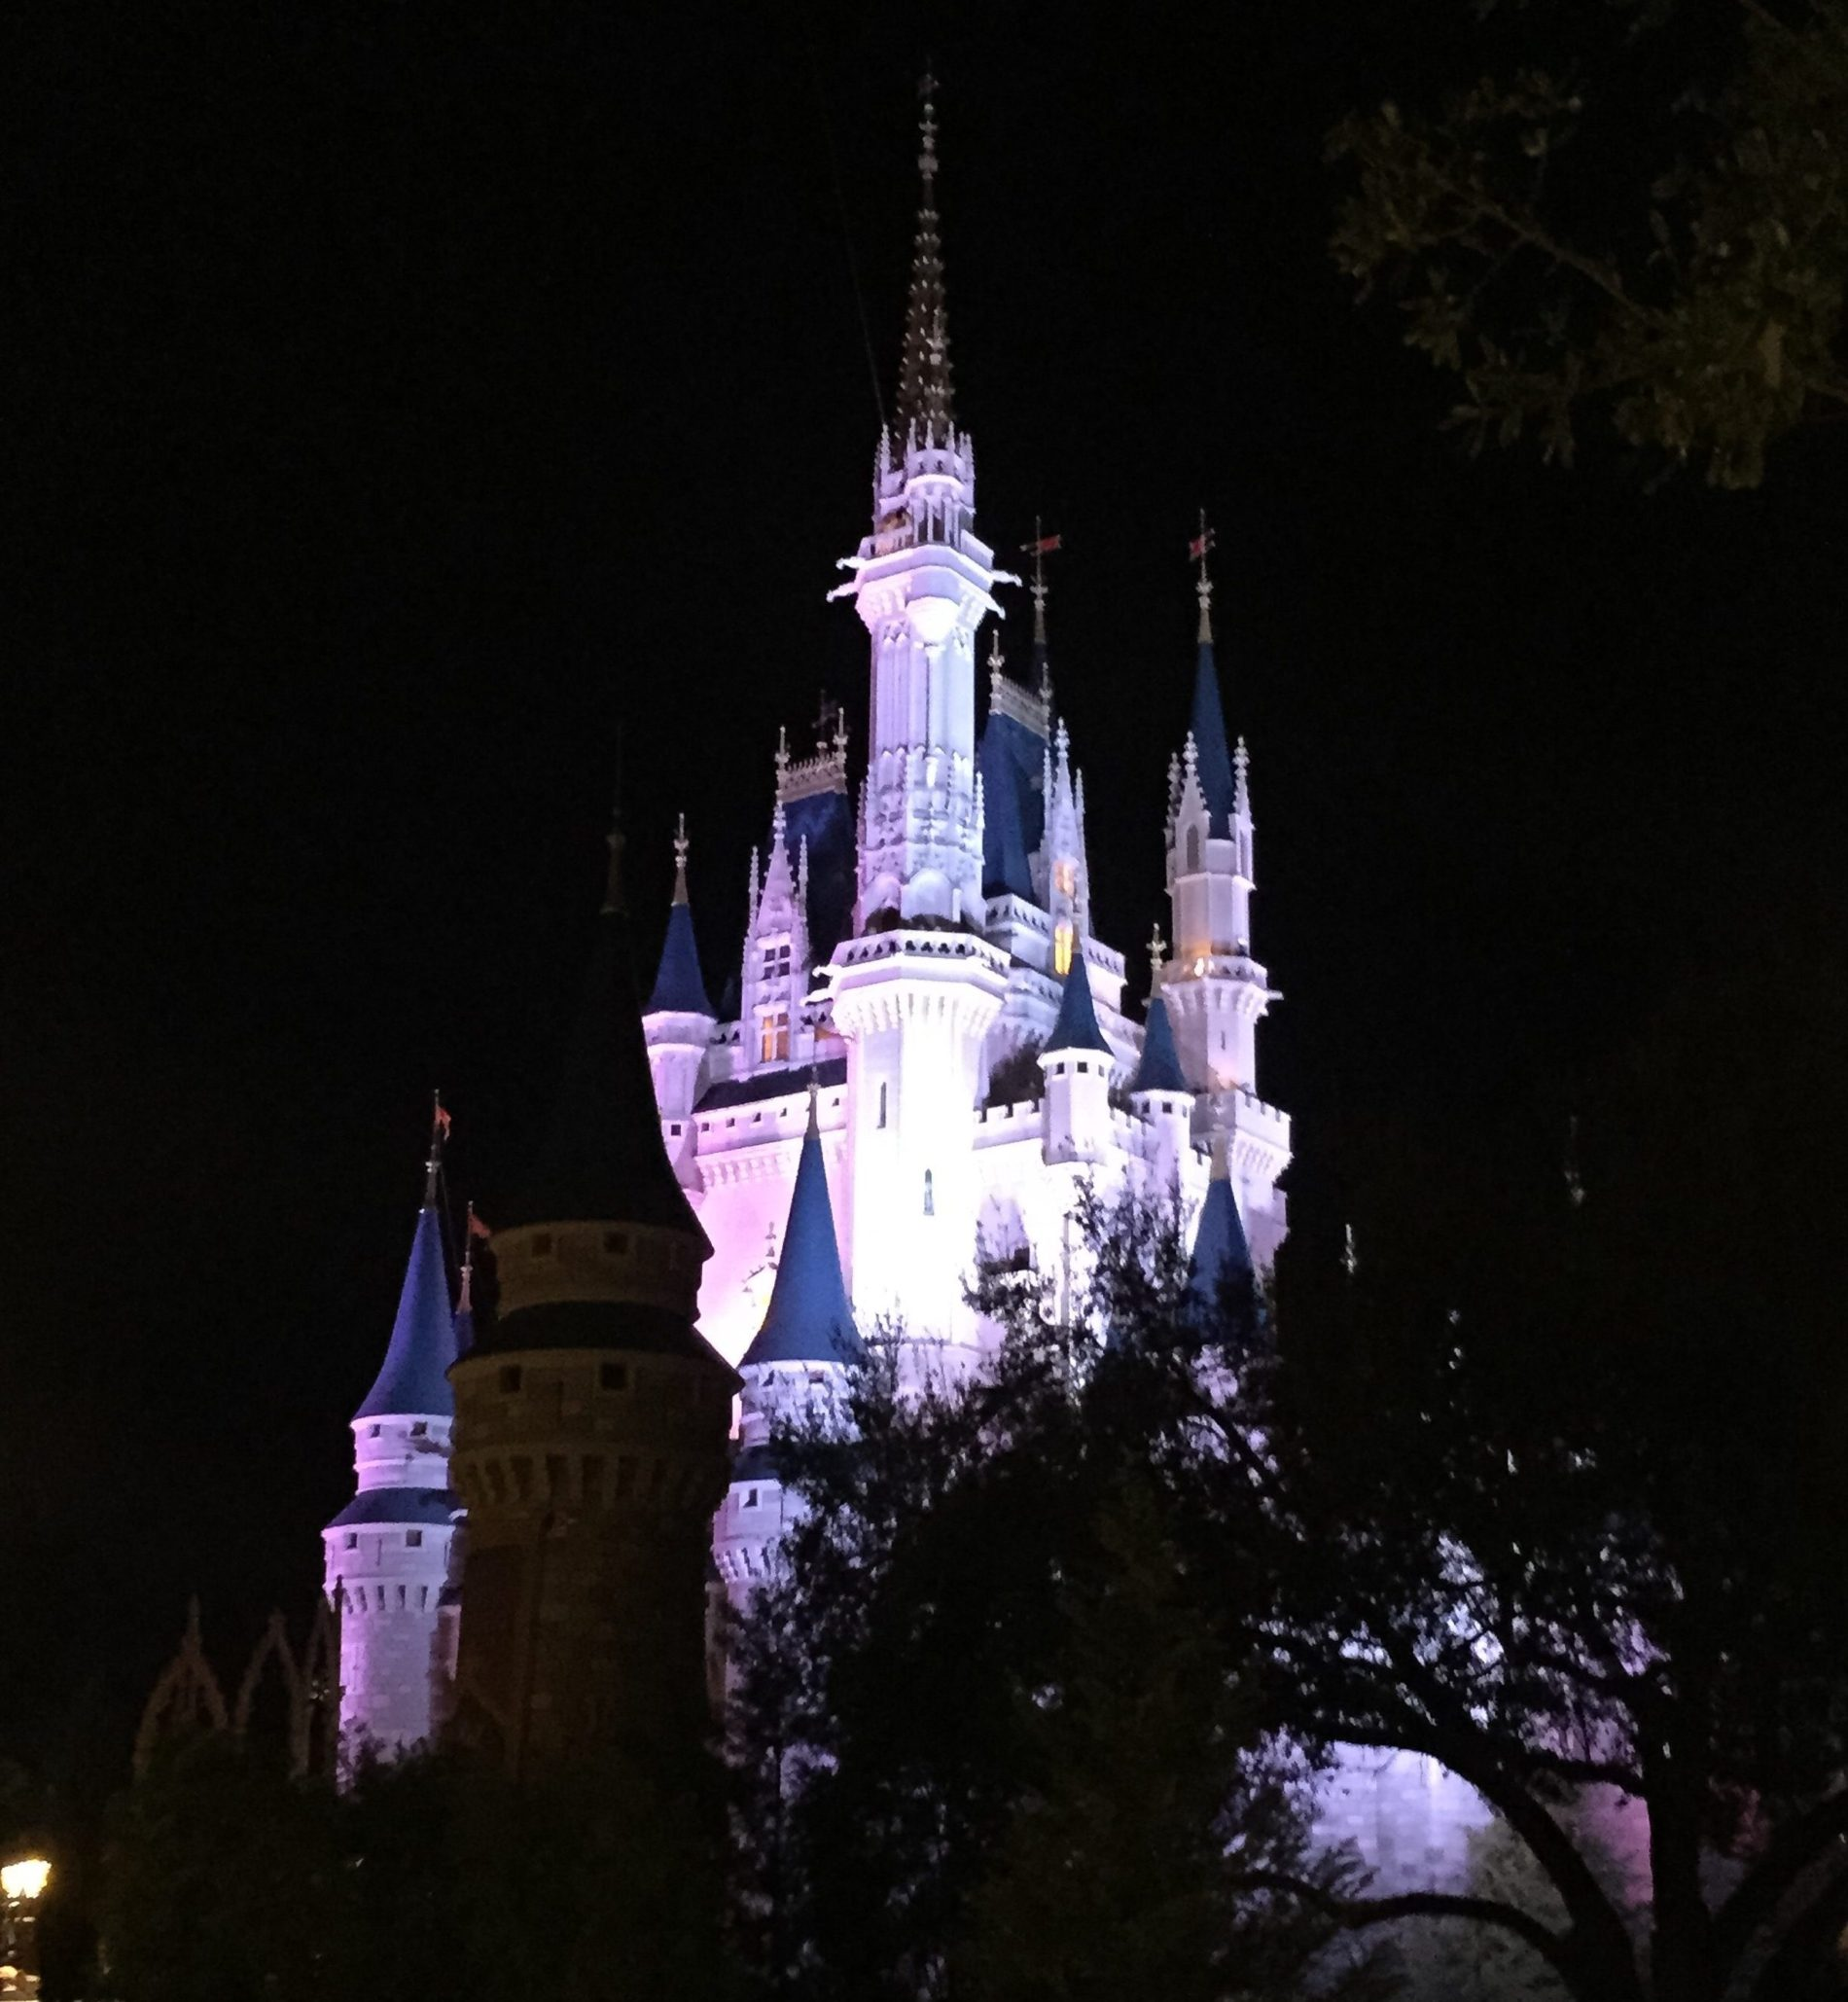 Disney Magic Kingdom - Cinderella's Castle